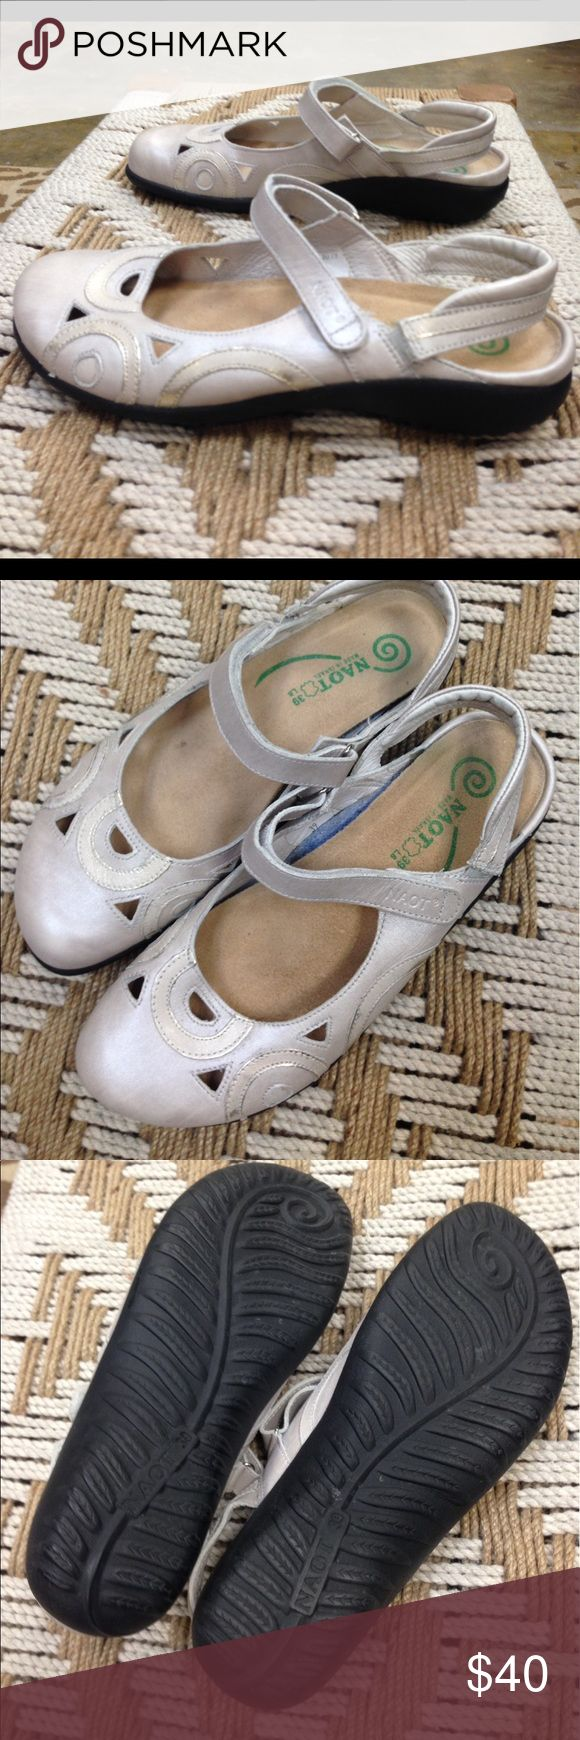 Naot Woman's Shoe Size 9.  (39) Naot Woman's Rongo Metallic Ivory Mary Jane Slingback Shoe. Size 9. (39). Naot Shoes Sandals